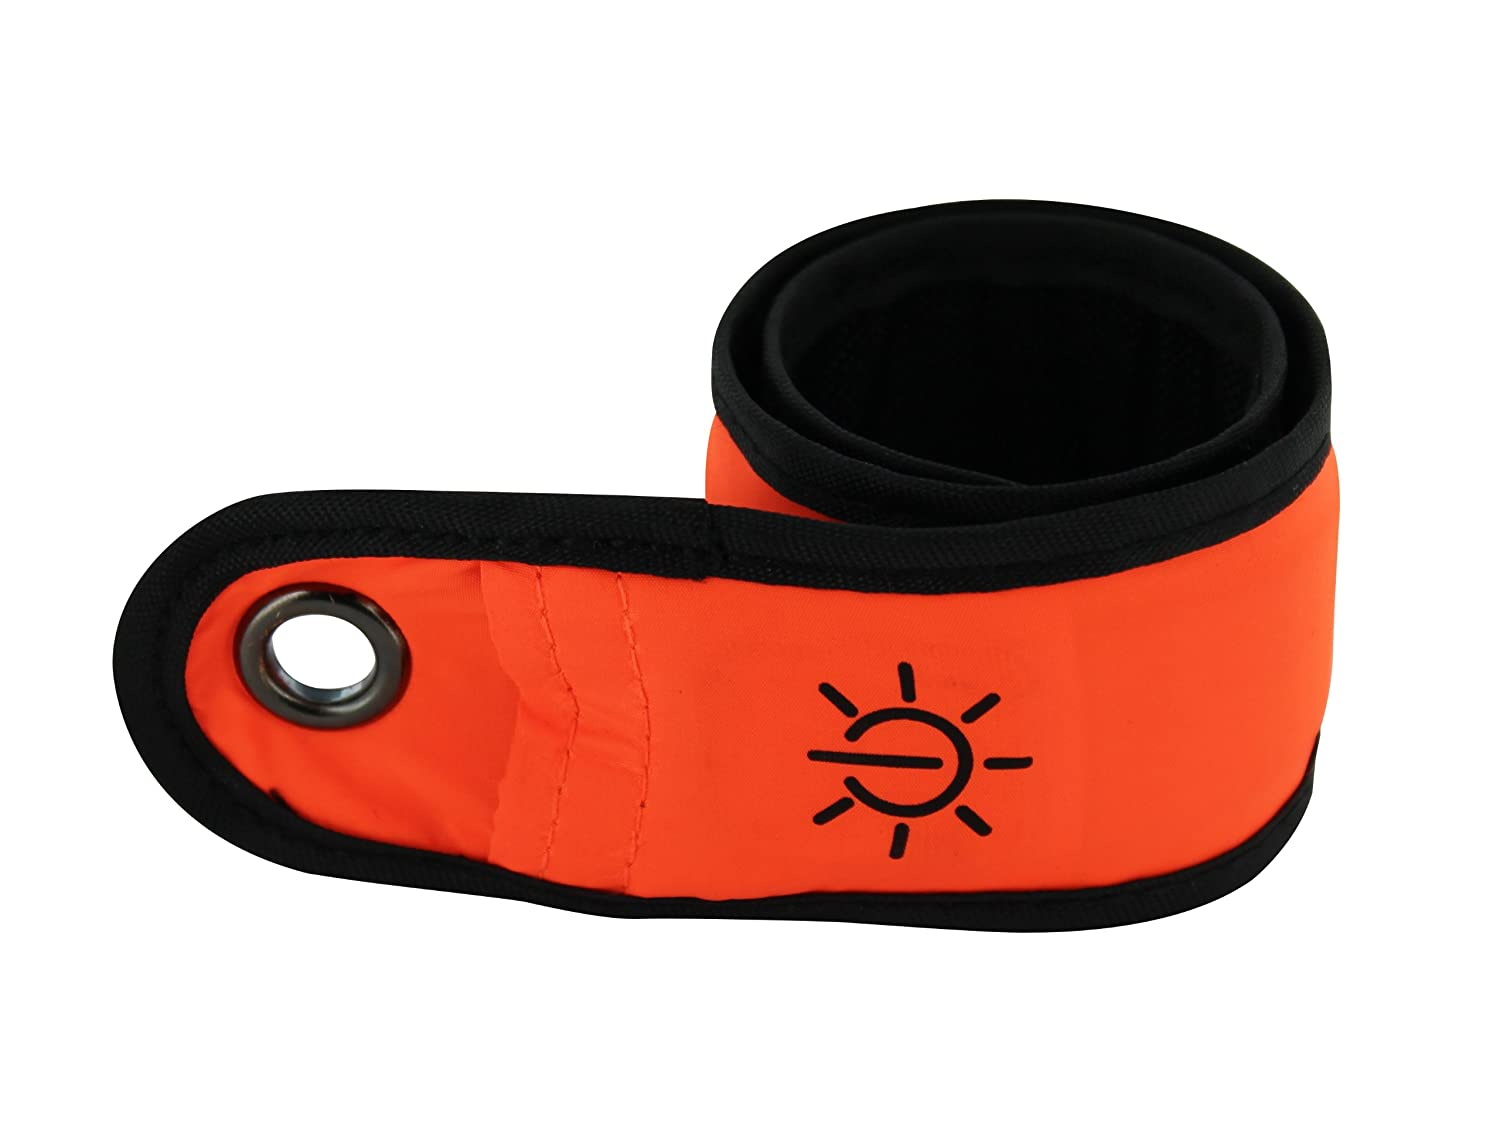 Brassard Wantalis Illumin8 (orange) Cyclisme UbOcmO